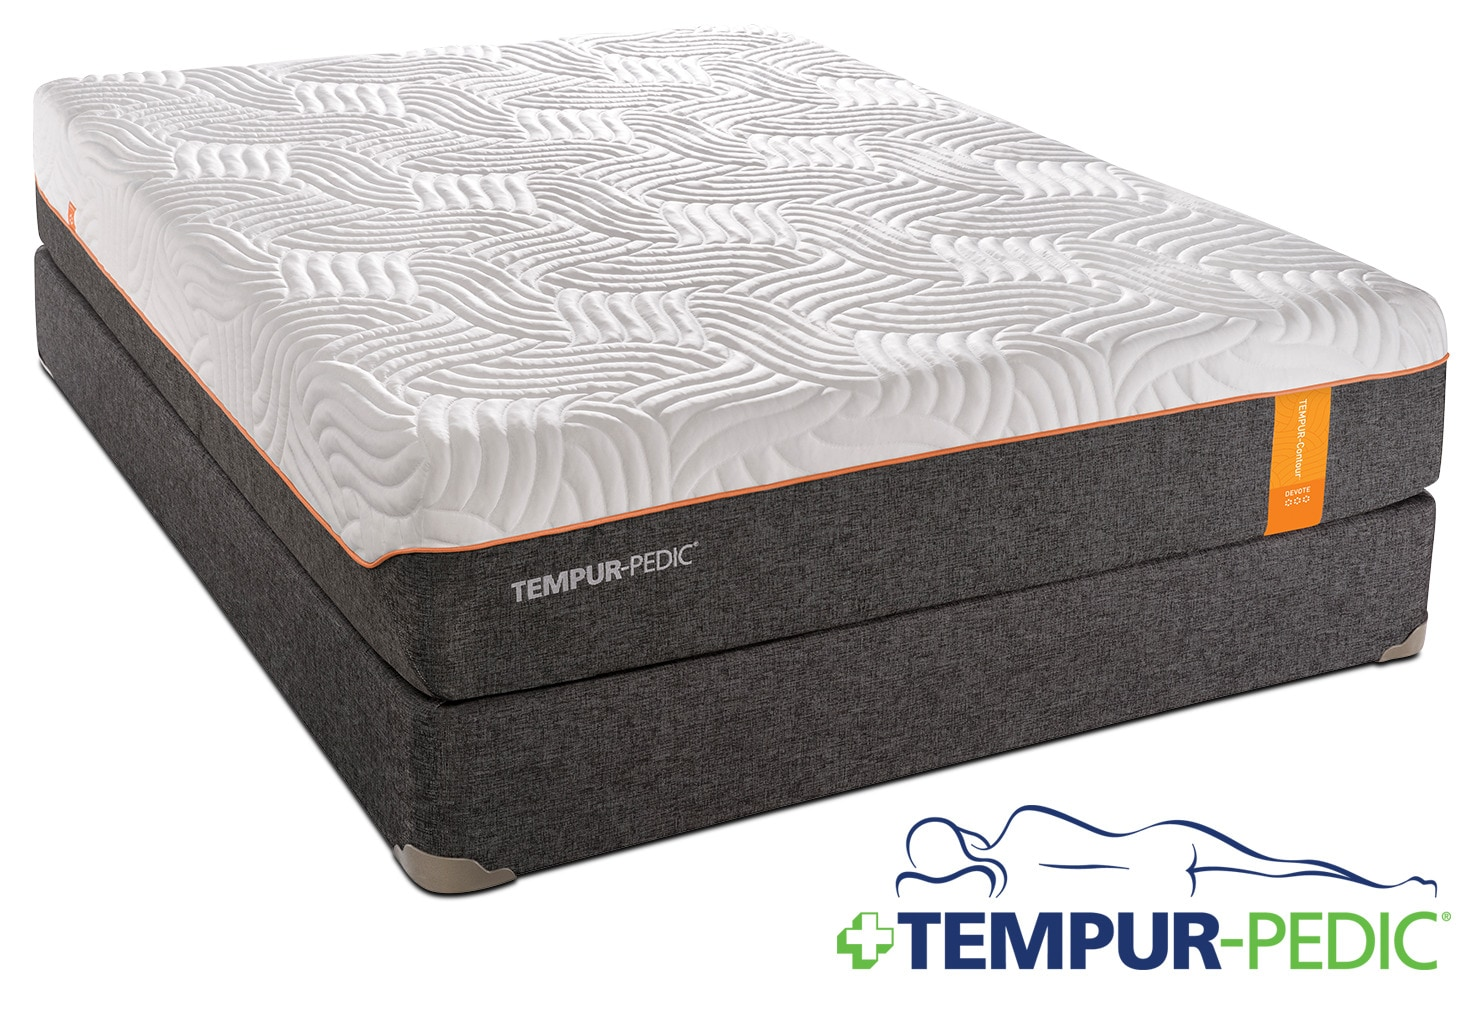 Mattresses and Bedding - Tempur-Pedic Devote Firm Full Mattress and Boxspring Set